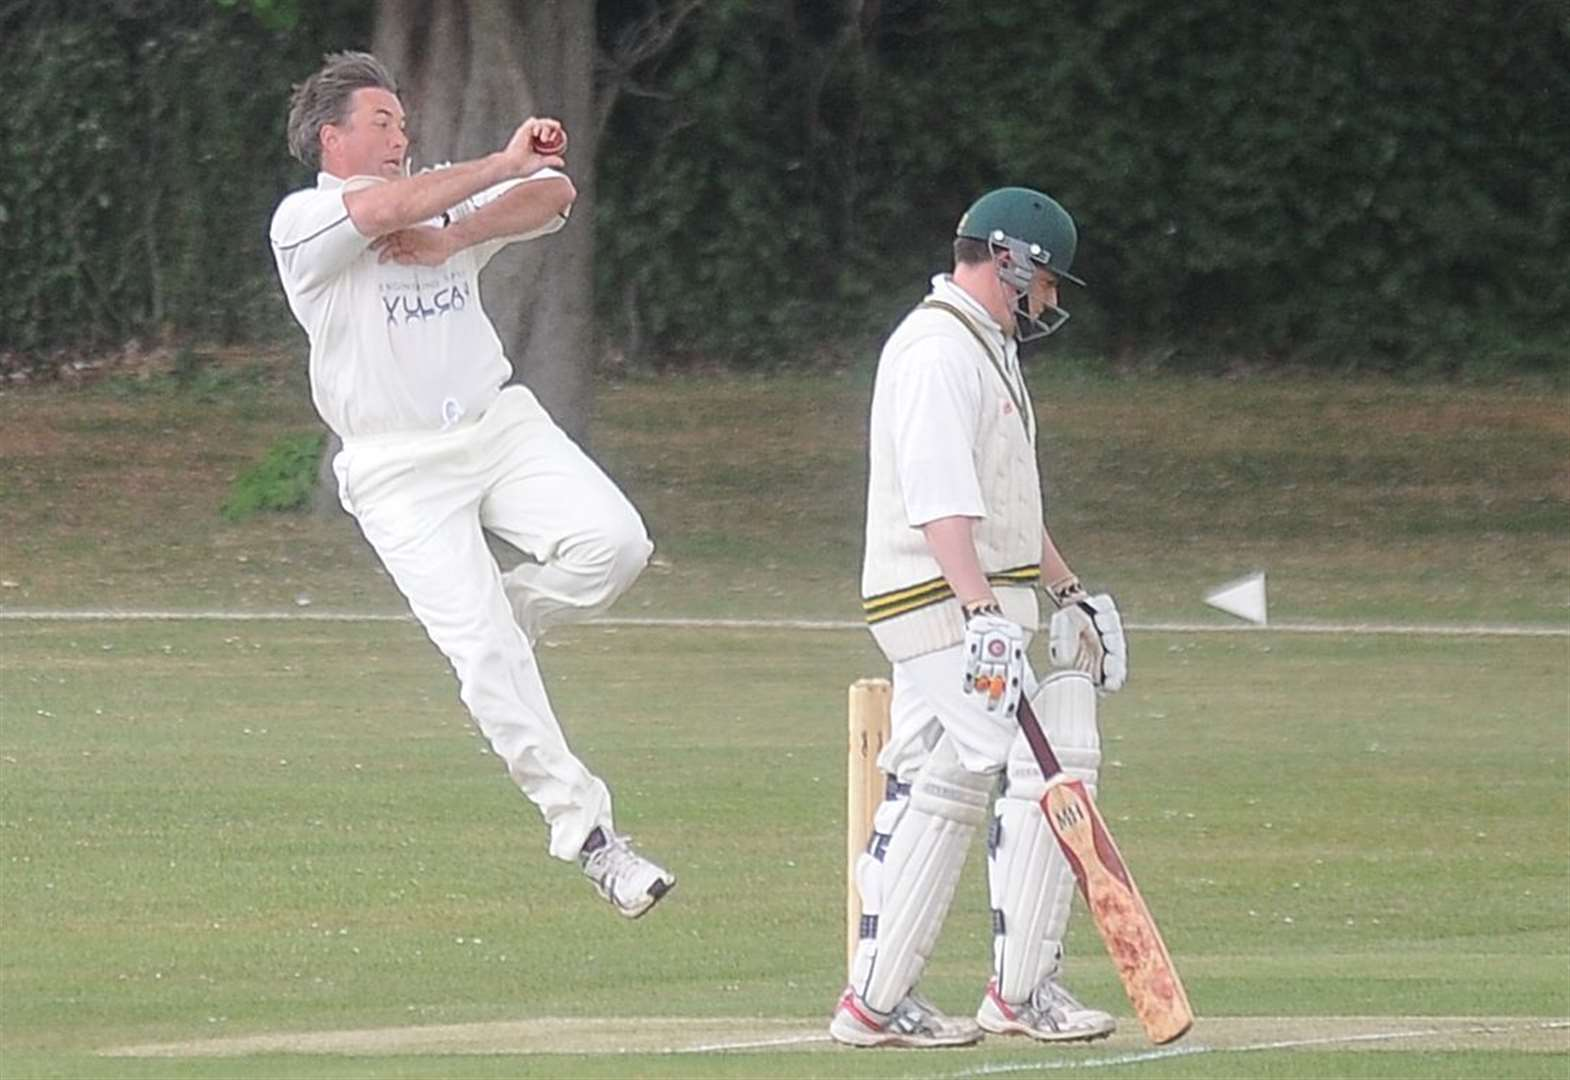 Silverwood an 'asset' to club cricket as he takes top role